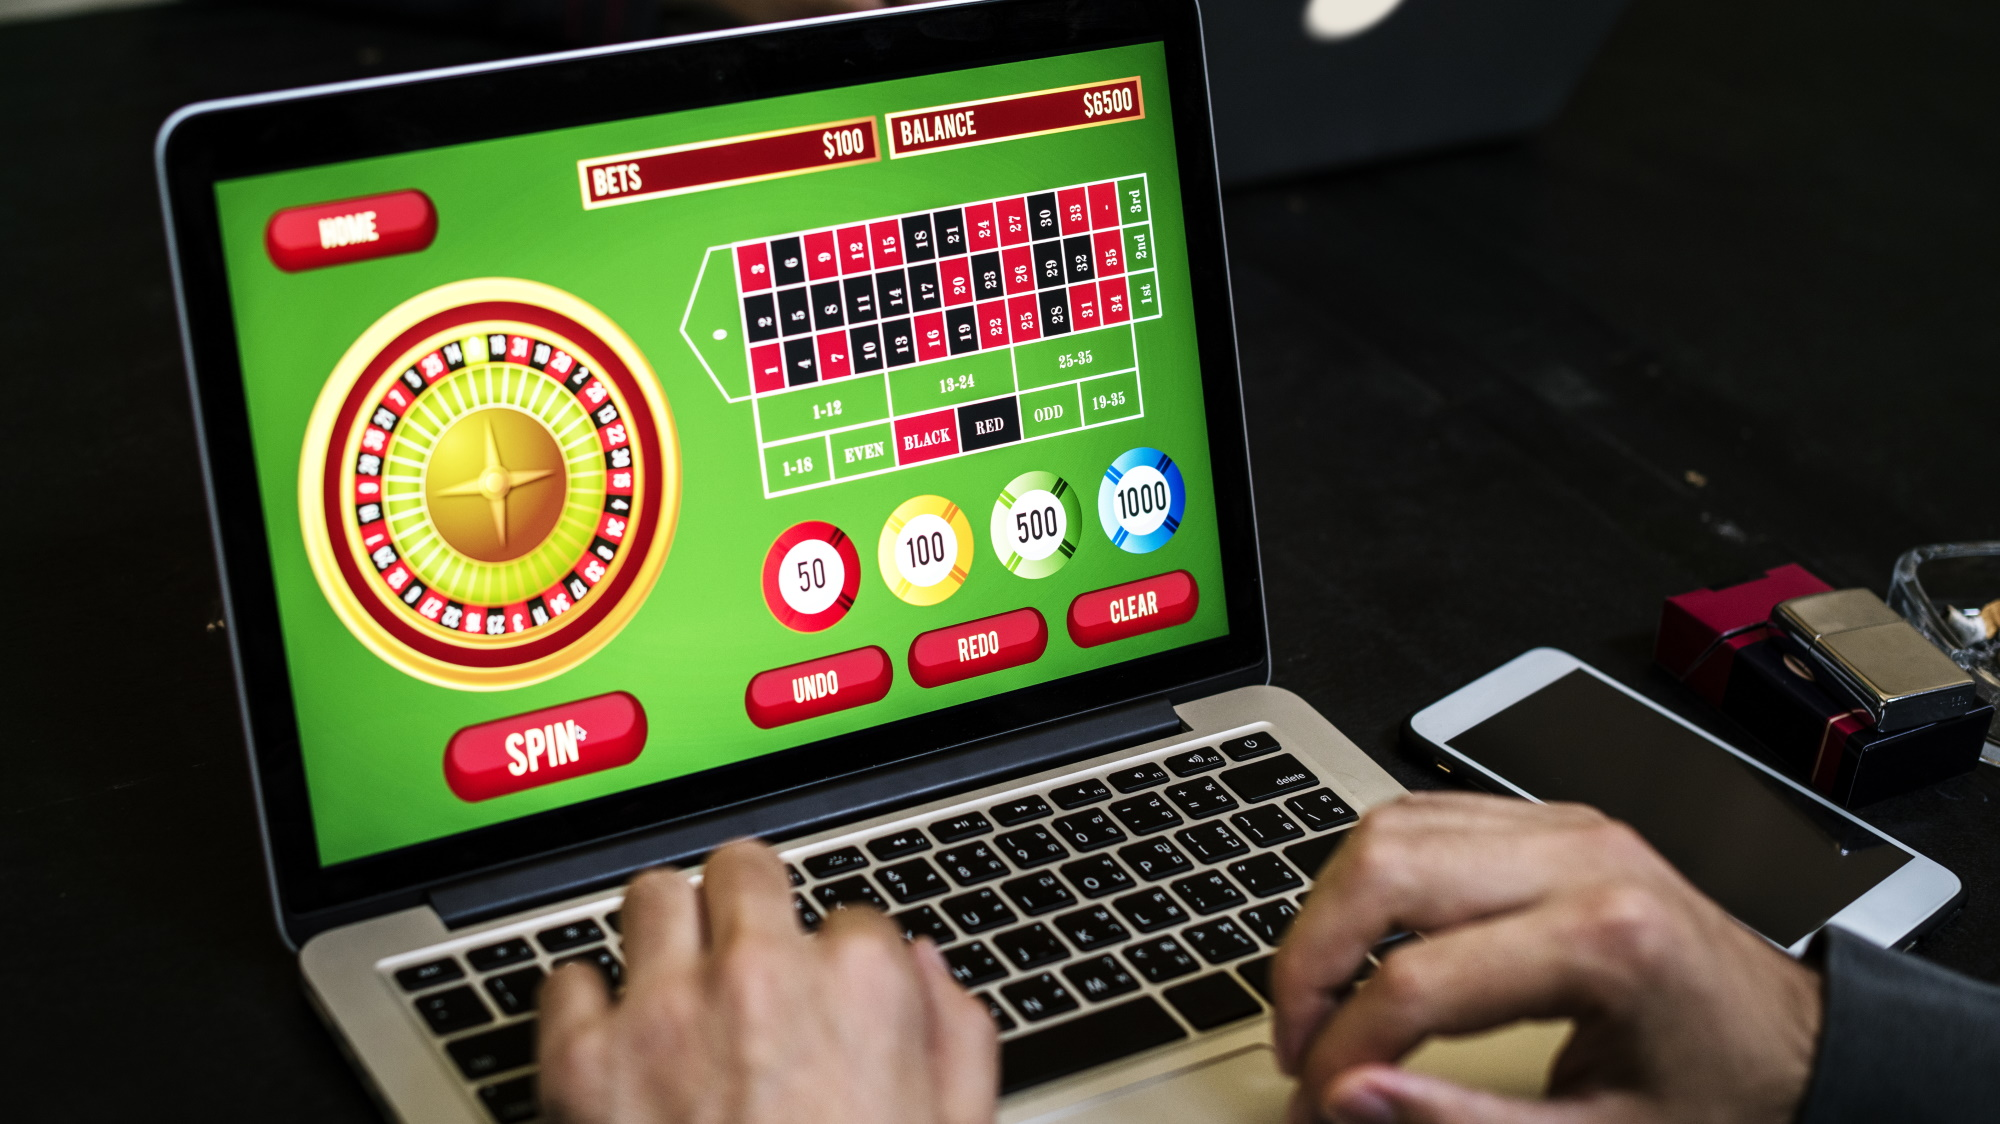 Top Tips To Improve Your Chances Of Winning Online Poker Games